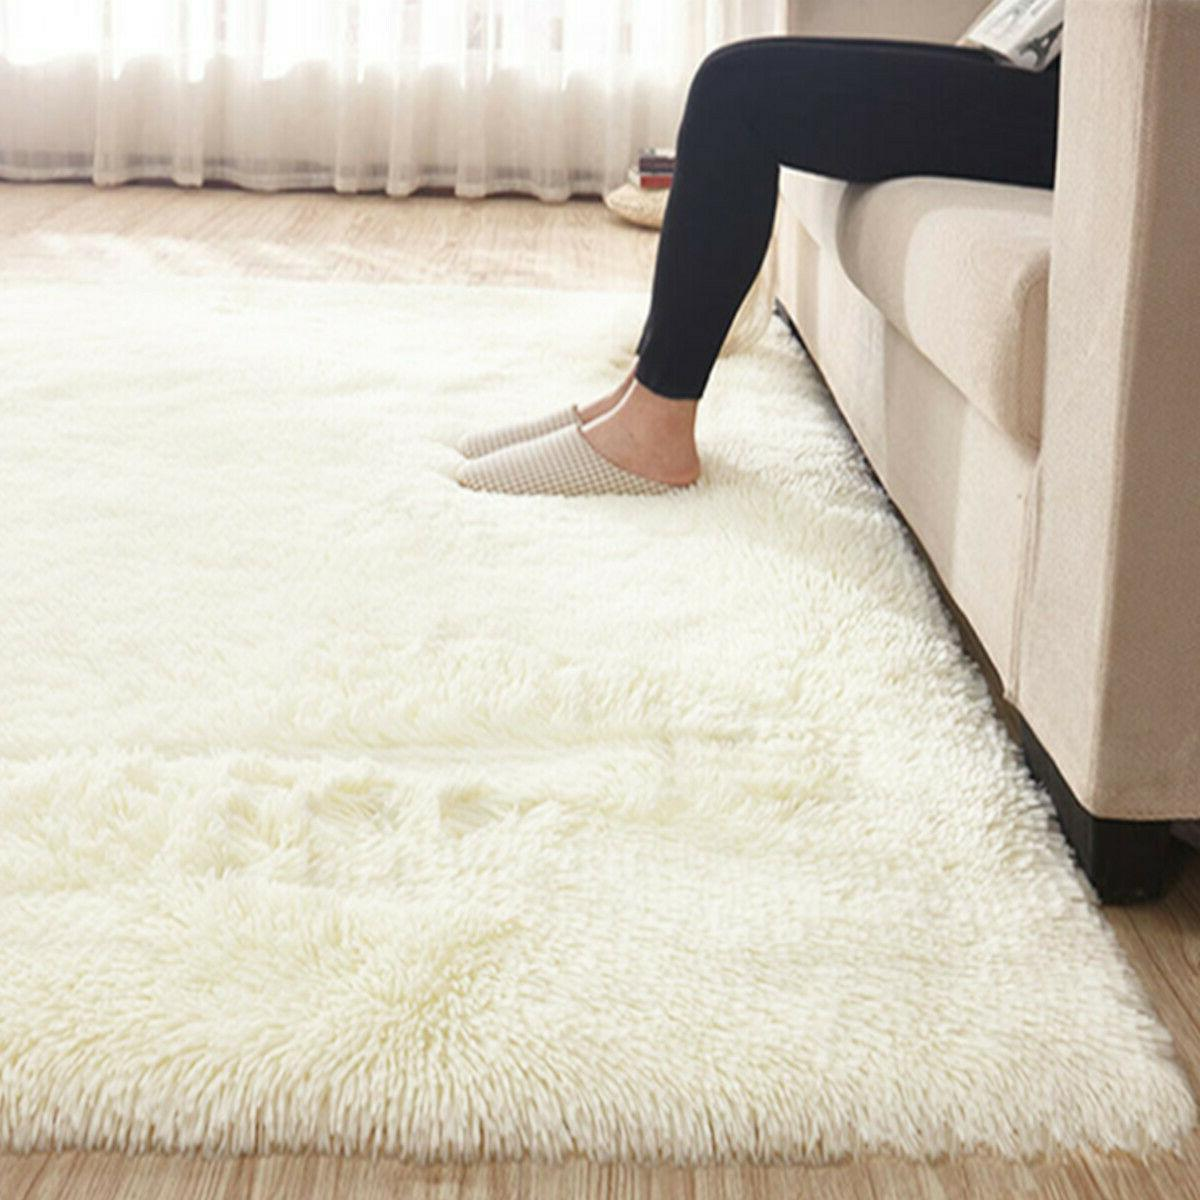 67x47 fluffy rugs anti skid shaggy area